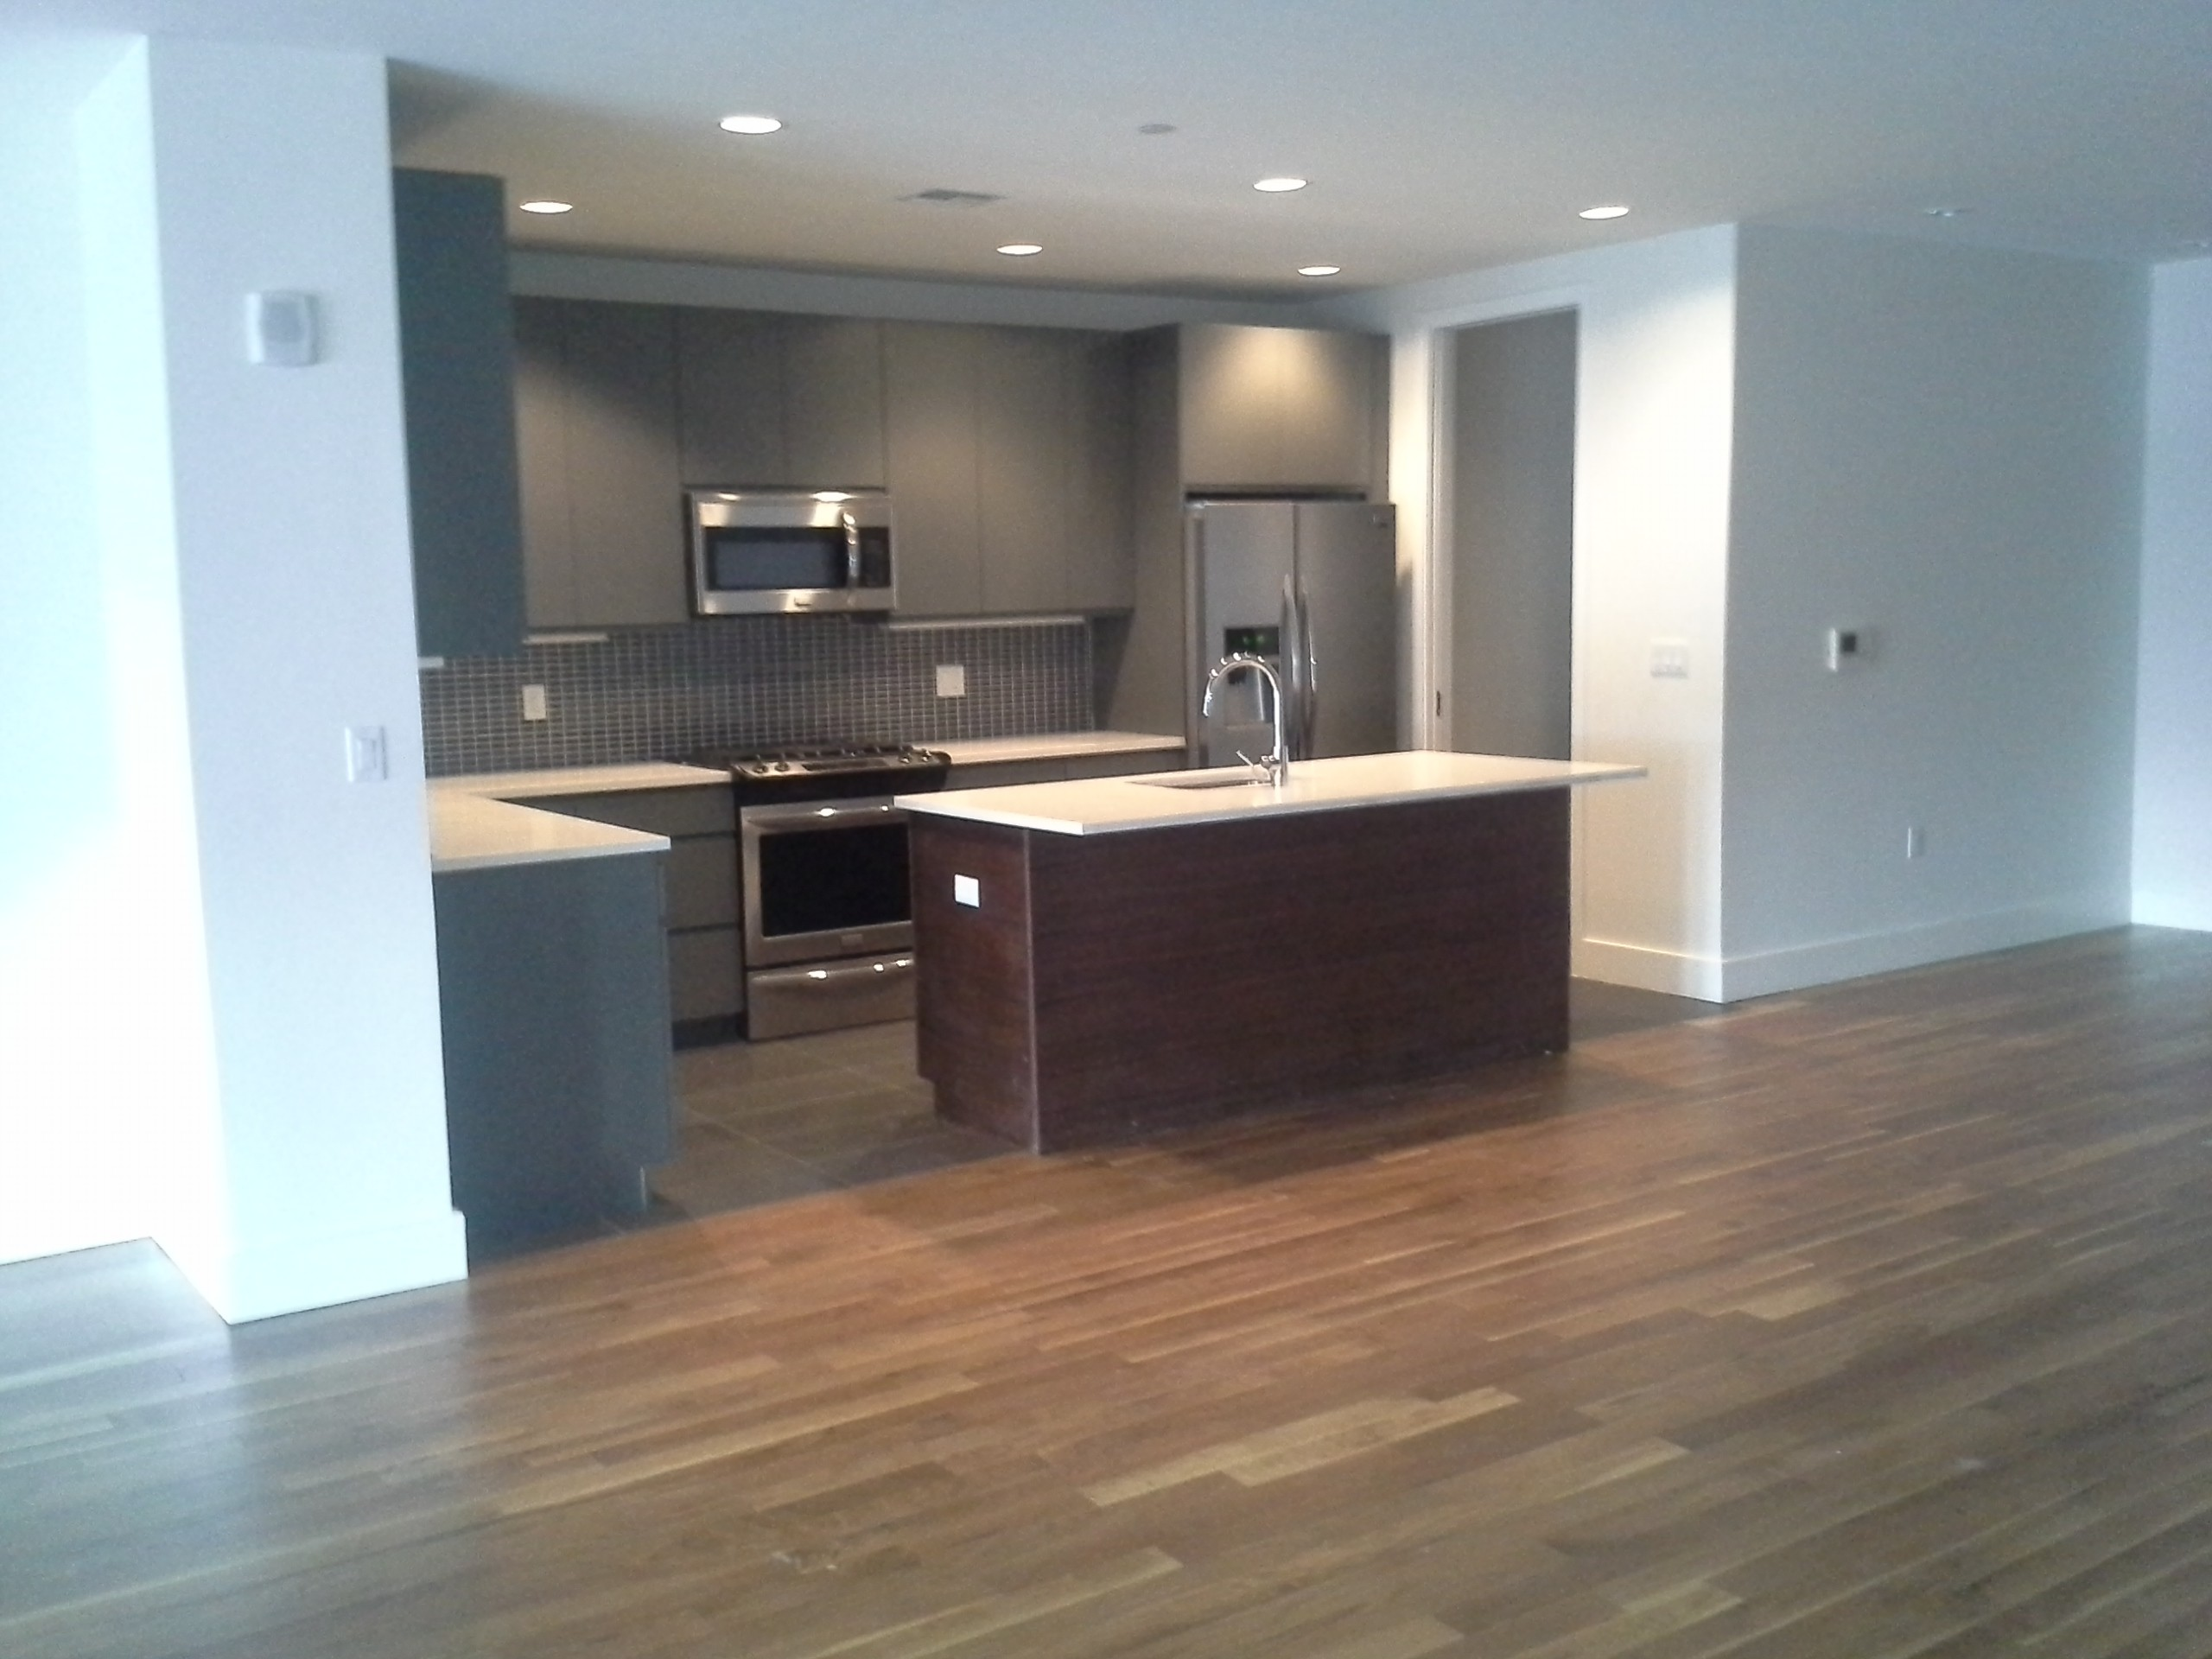 Ellery Ave Fort Lee Nj 07024 1 Bedroom Apartment For Rent For 2 575 Month Zumper